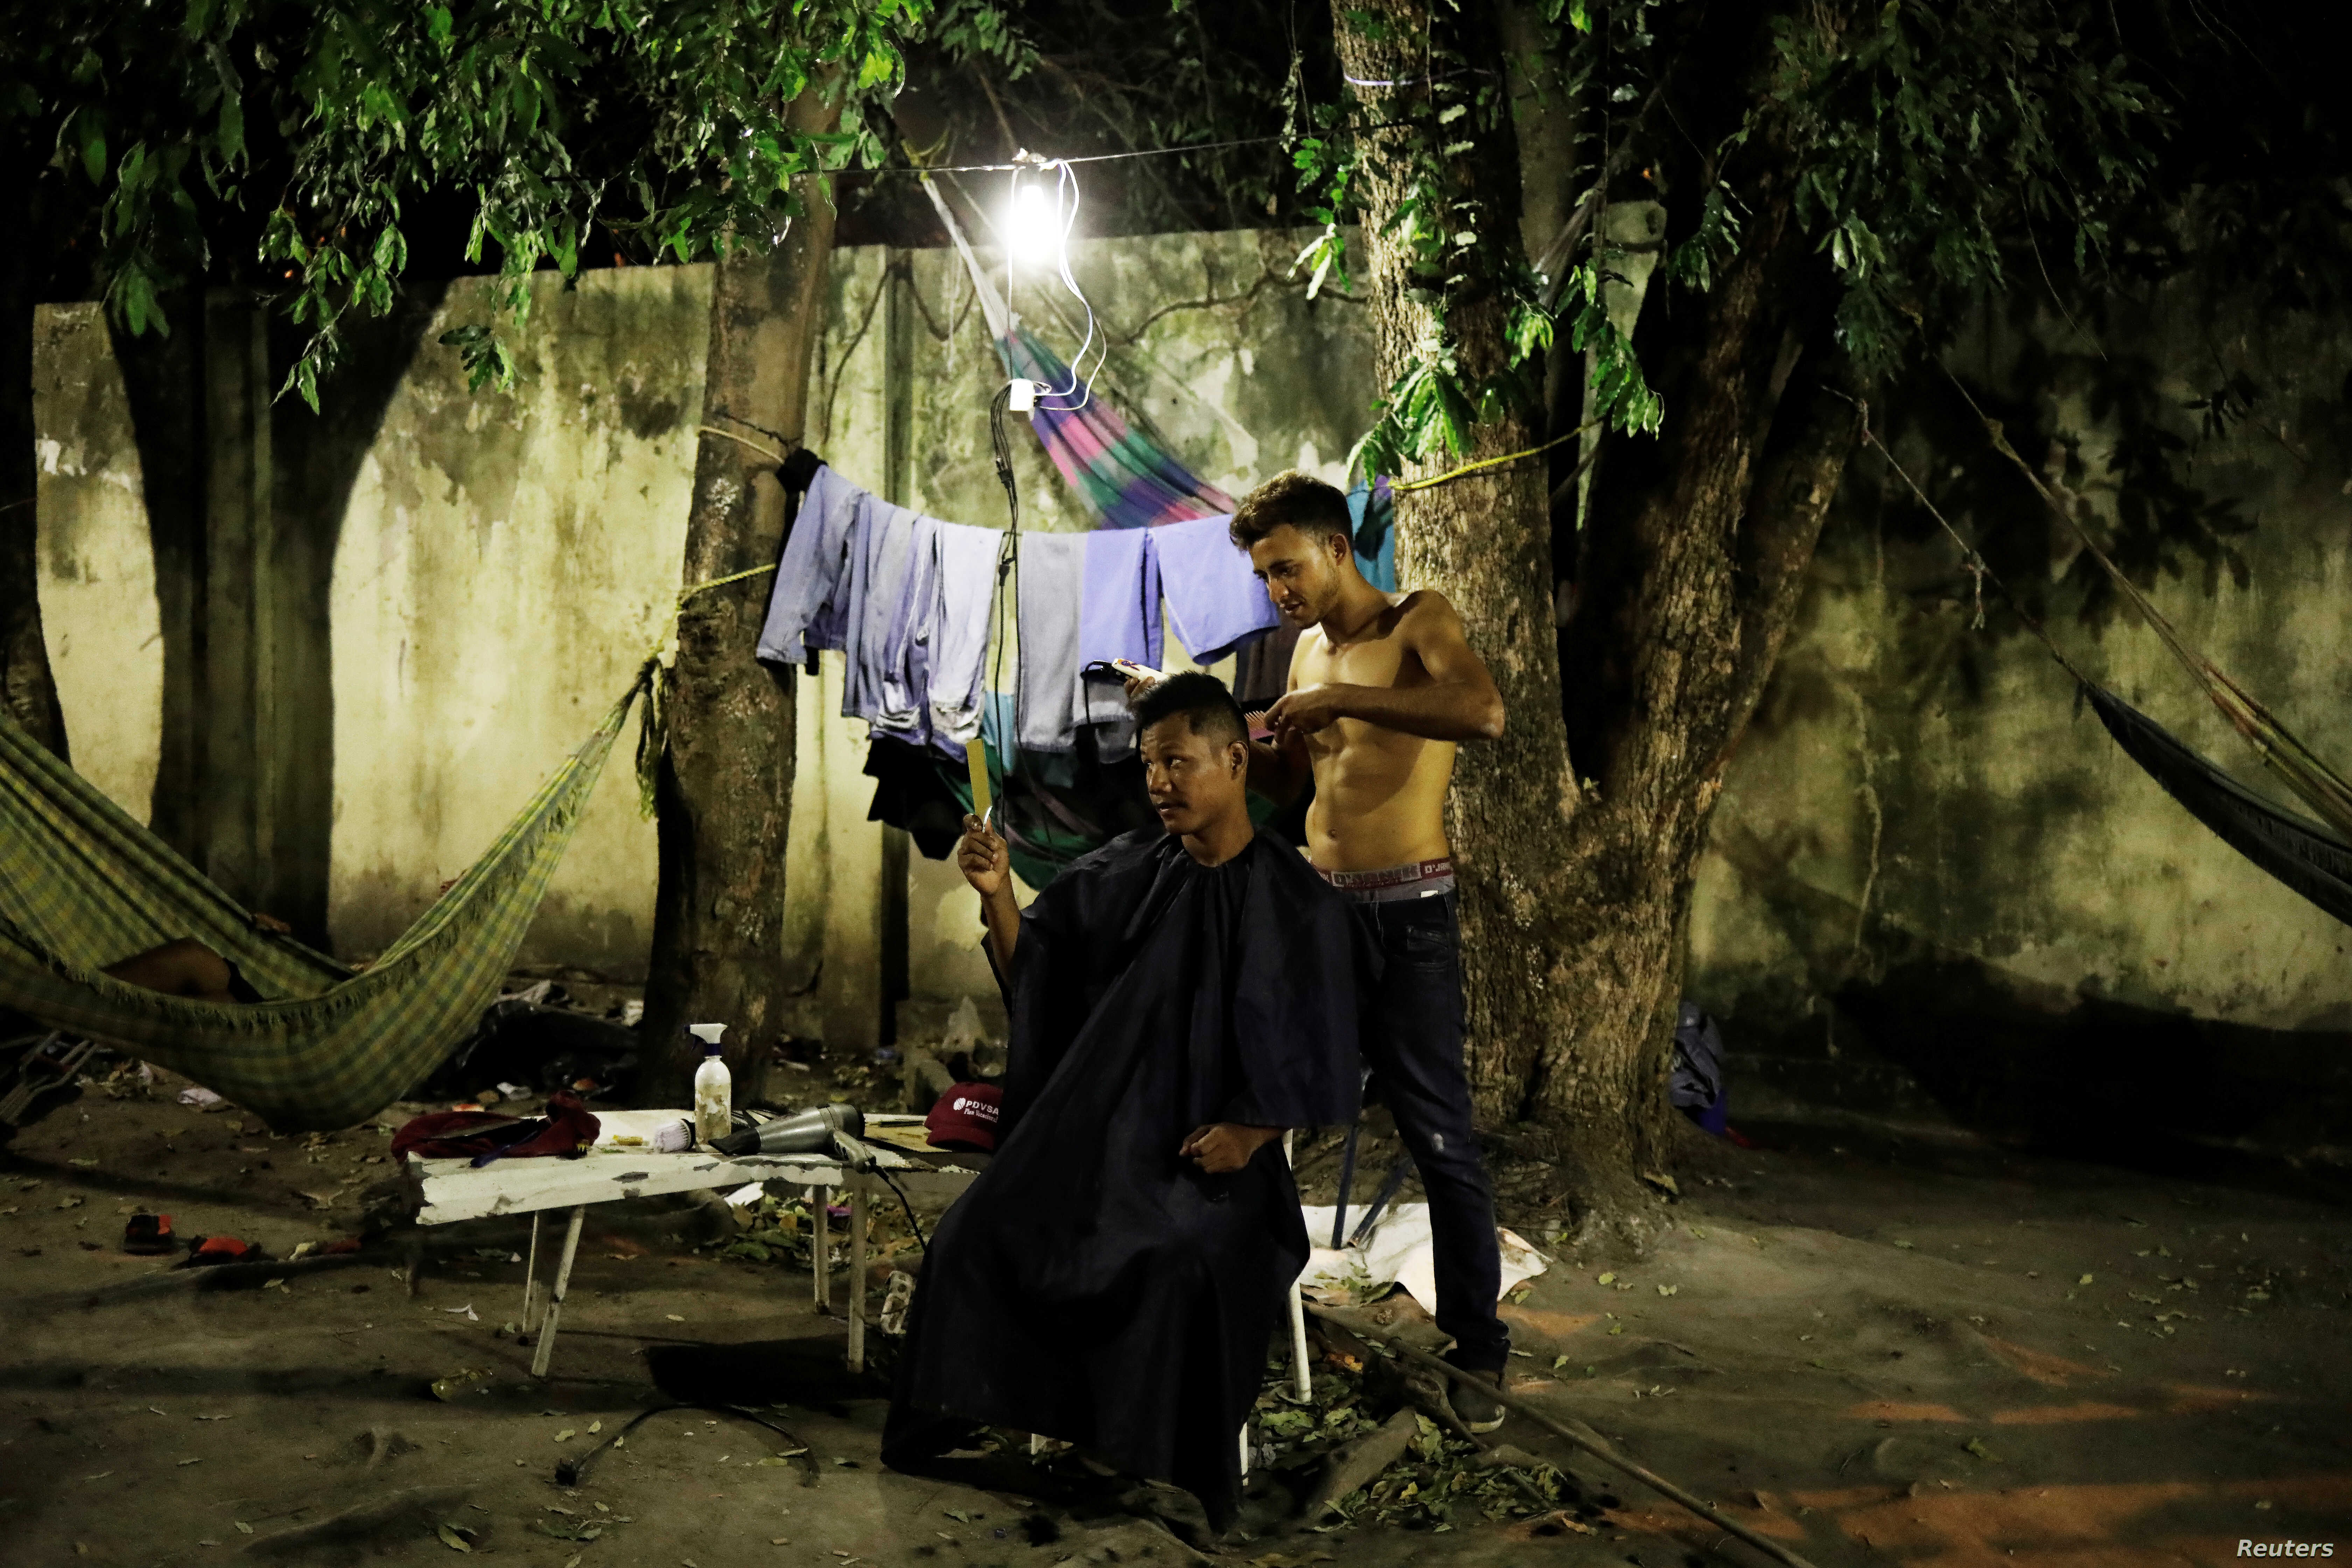 A Venezuelan man cuts the hair of his friend at a gym which has turned into a shelter for Venezuelans in Boa Vista, Brazil Nov. 17, 2017.